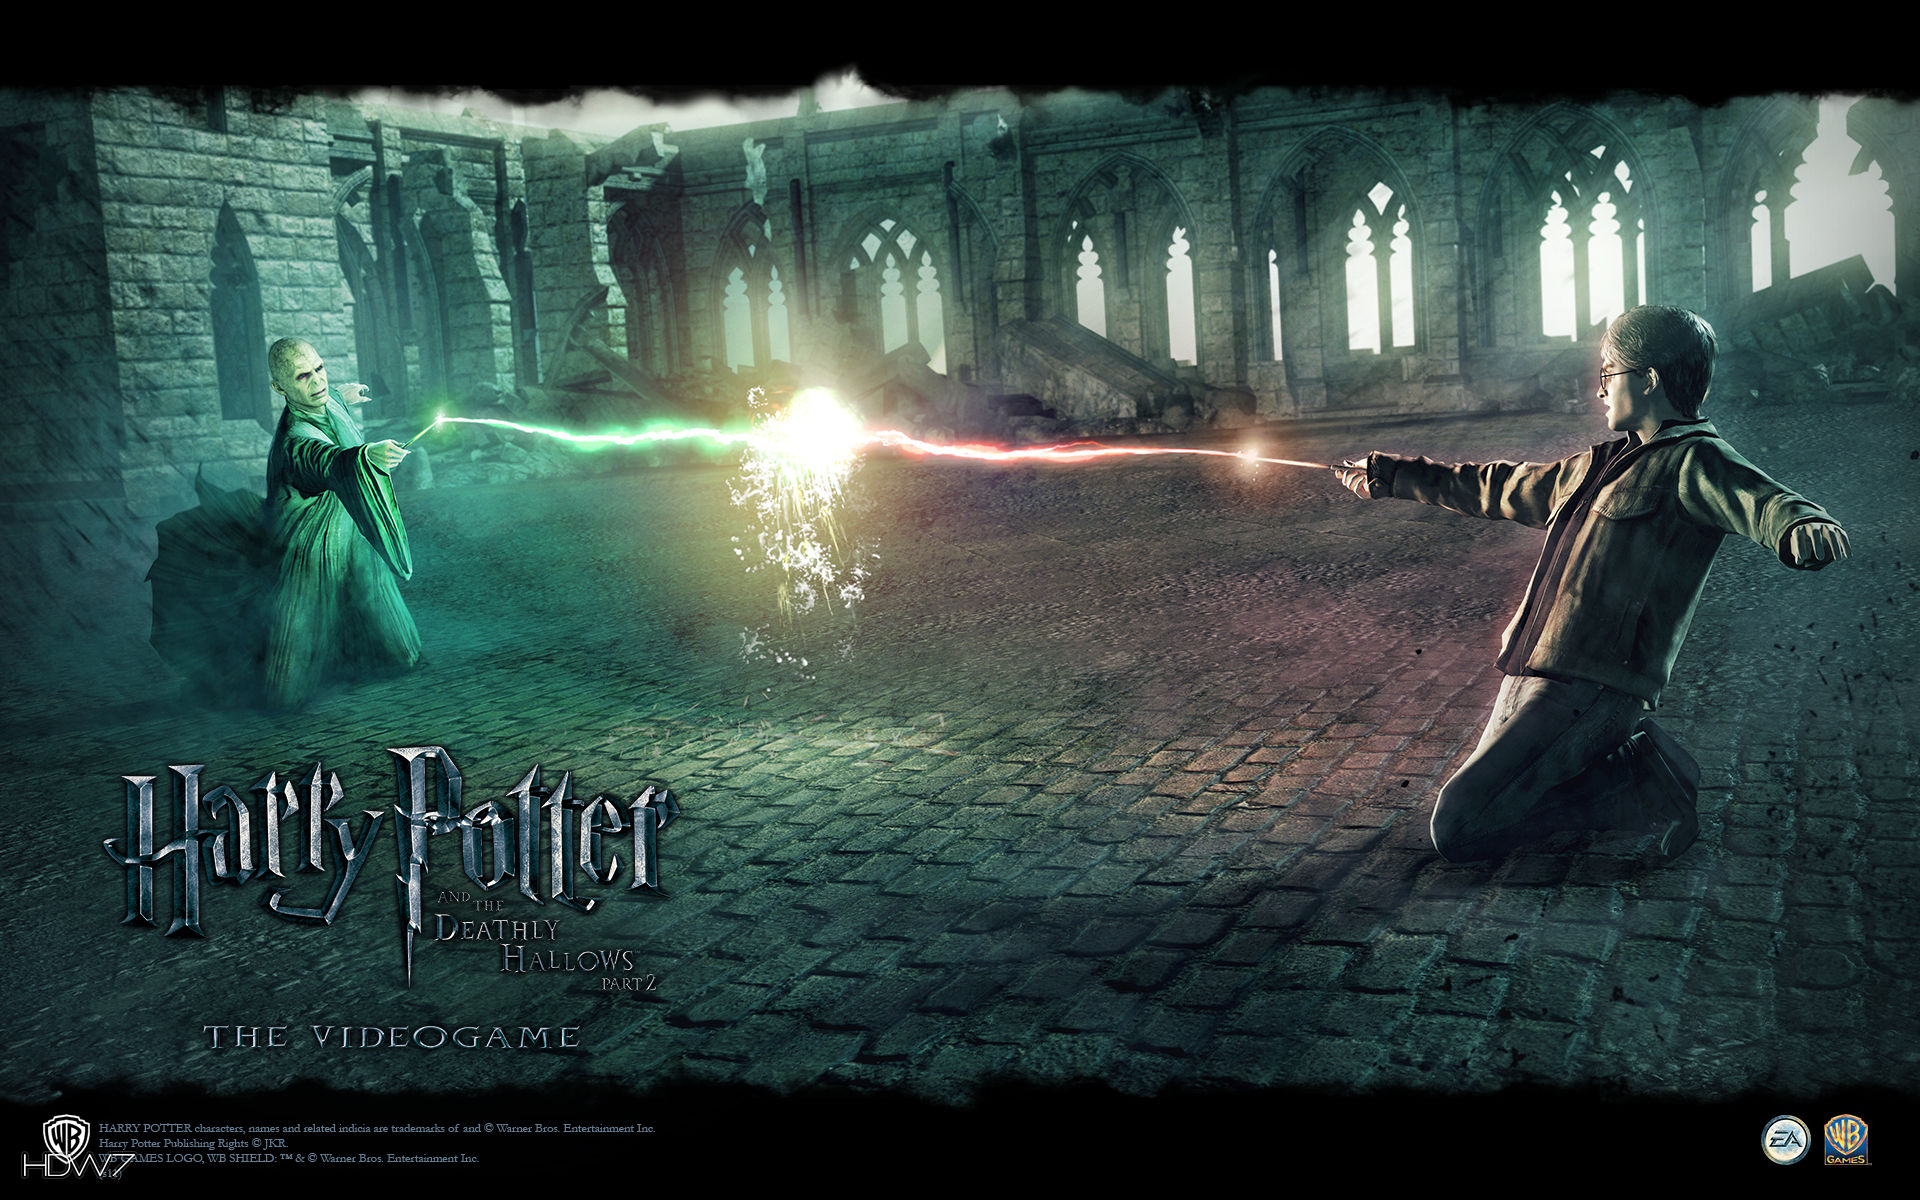 Harry Potter And The Deathly Hallows Wallpaper Widescreen 1920x1200